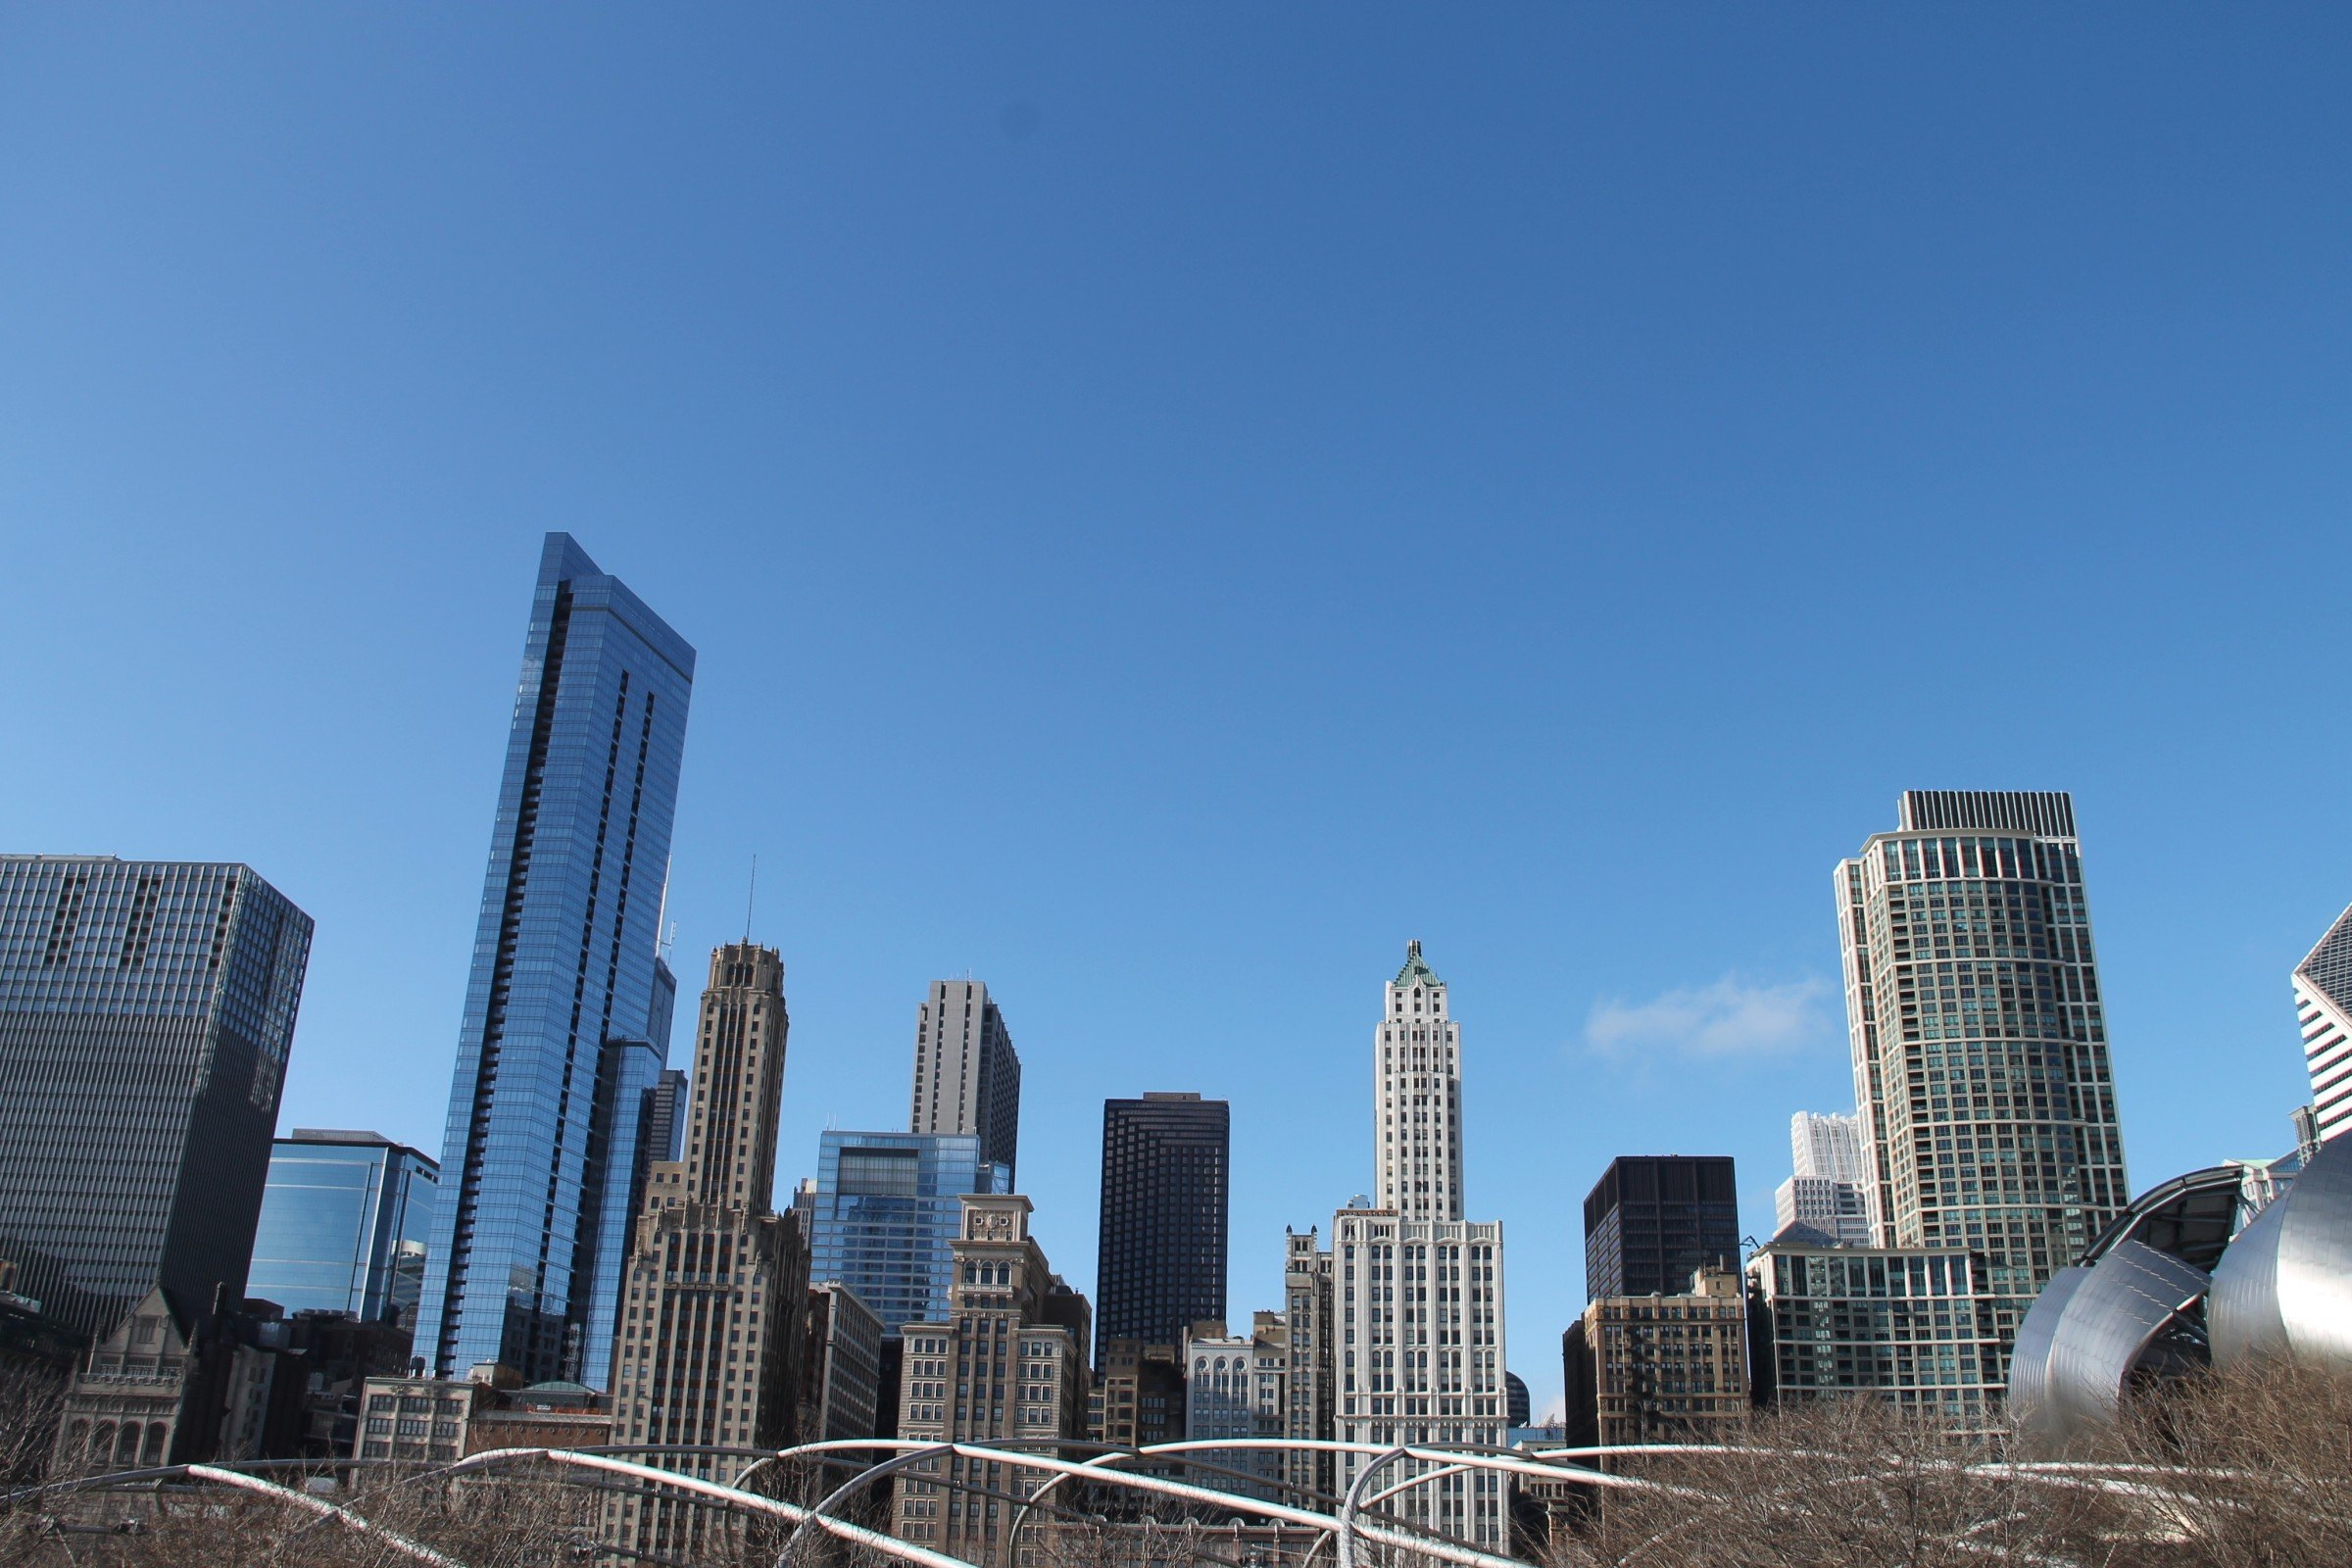 Free Stock Photo of Tall Buildings of City Skyline Against Clear Sky